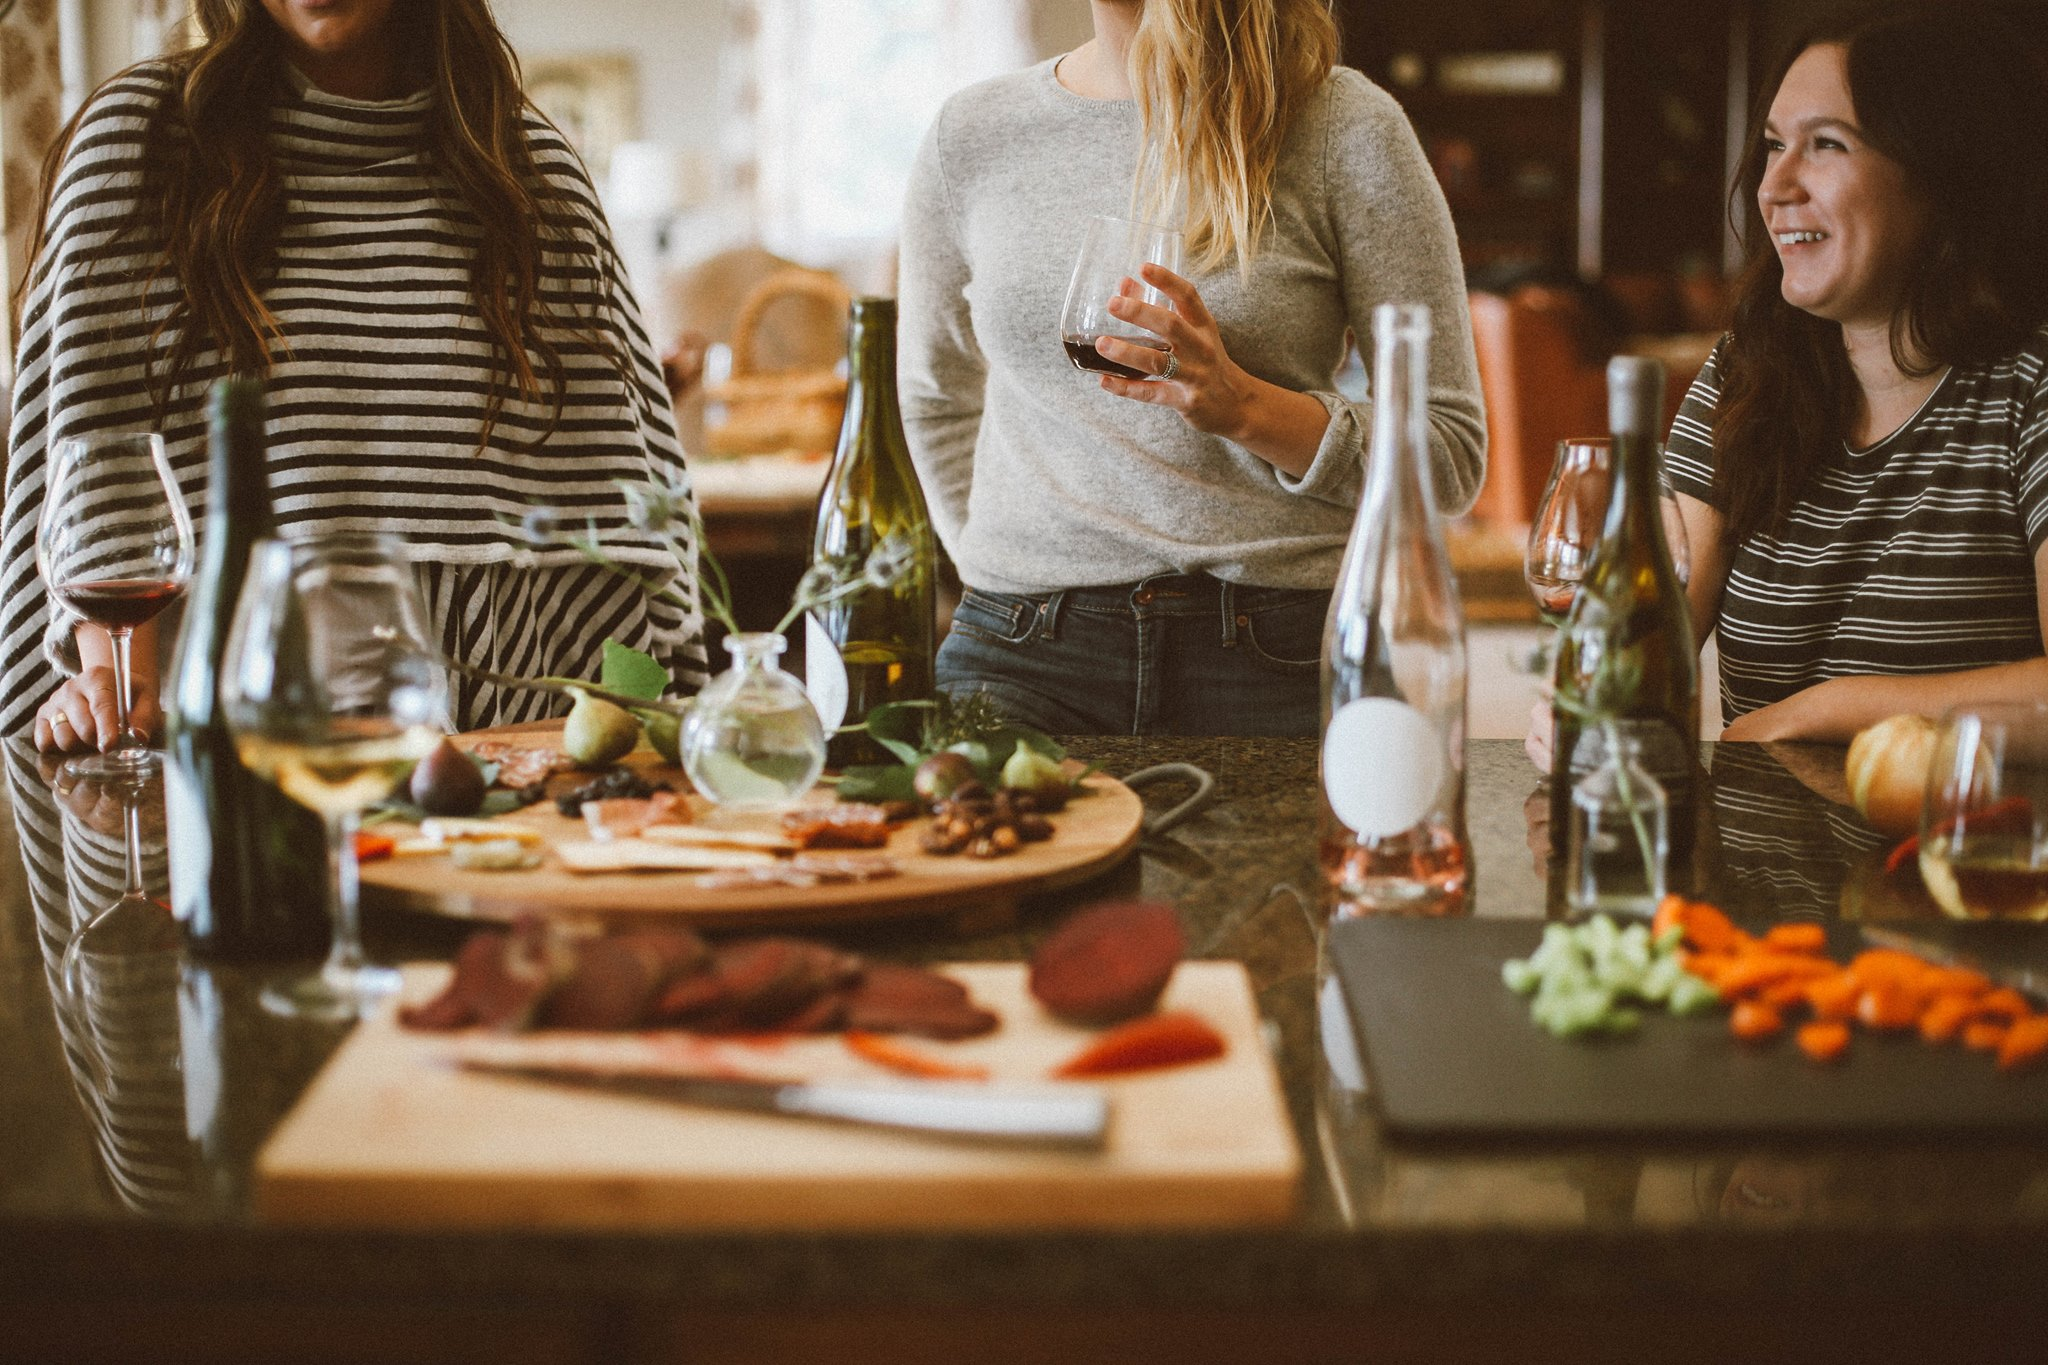 Jewish young professionals sit around a Shabbat dinner table with wine